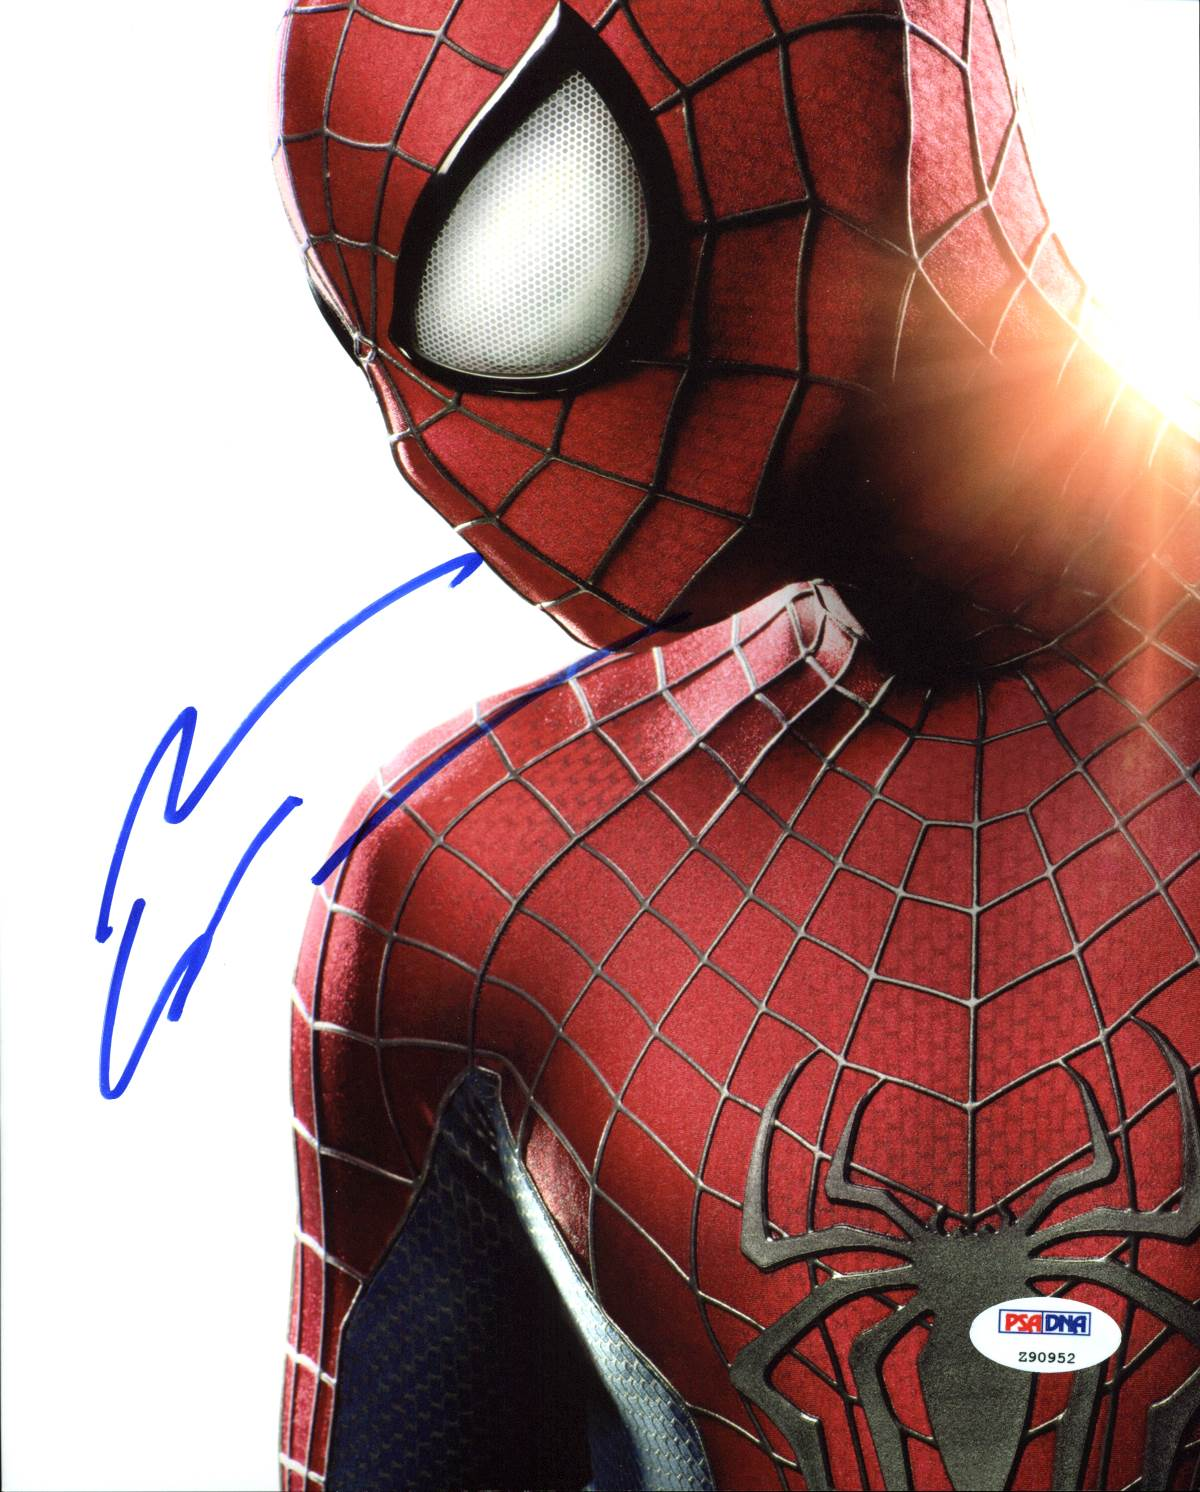 Andrew Garfield The Amazing Spiderman Autographed 8x10 Photo VIP-Z90952